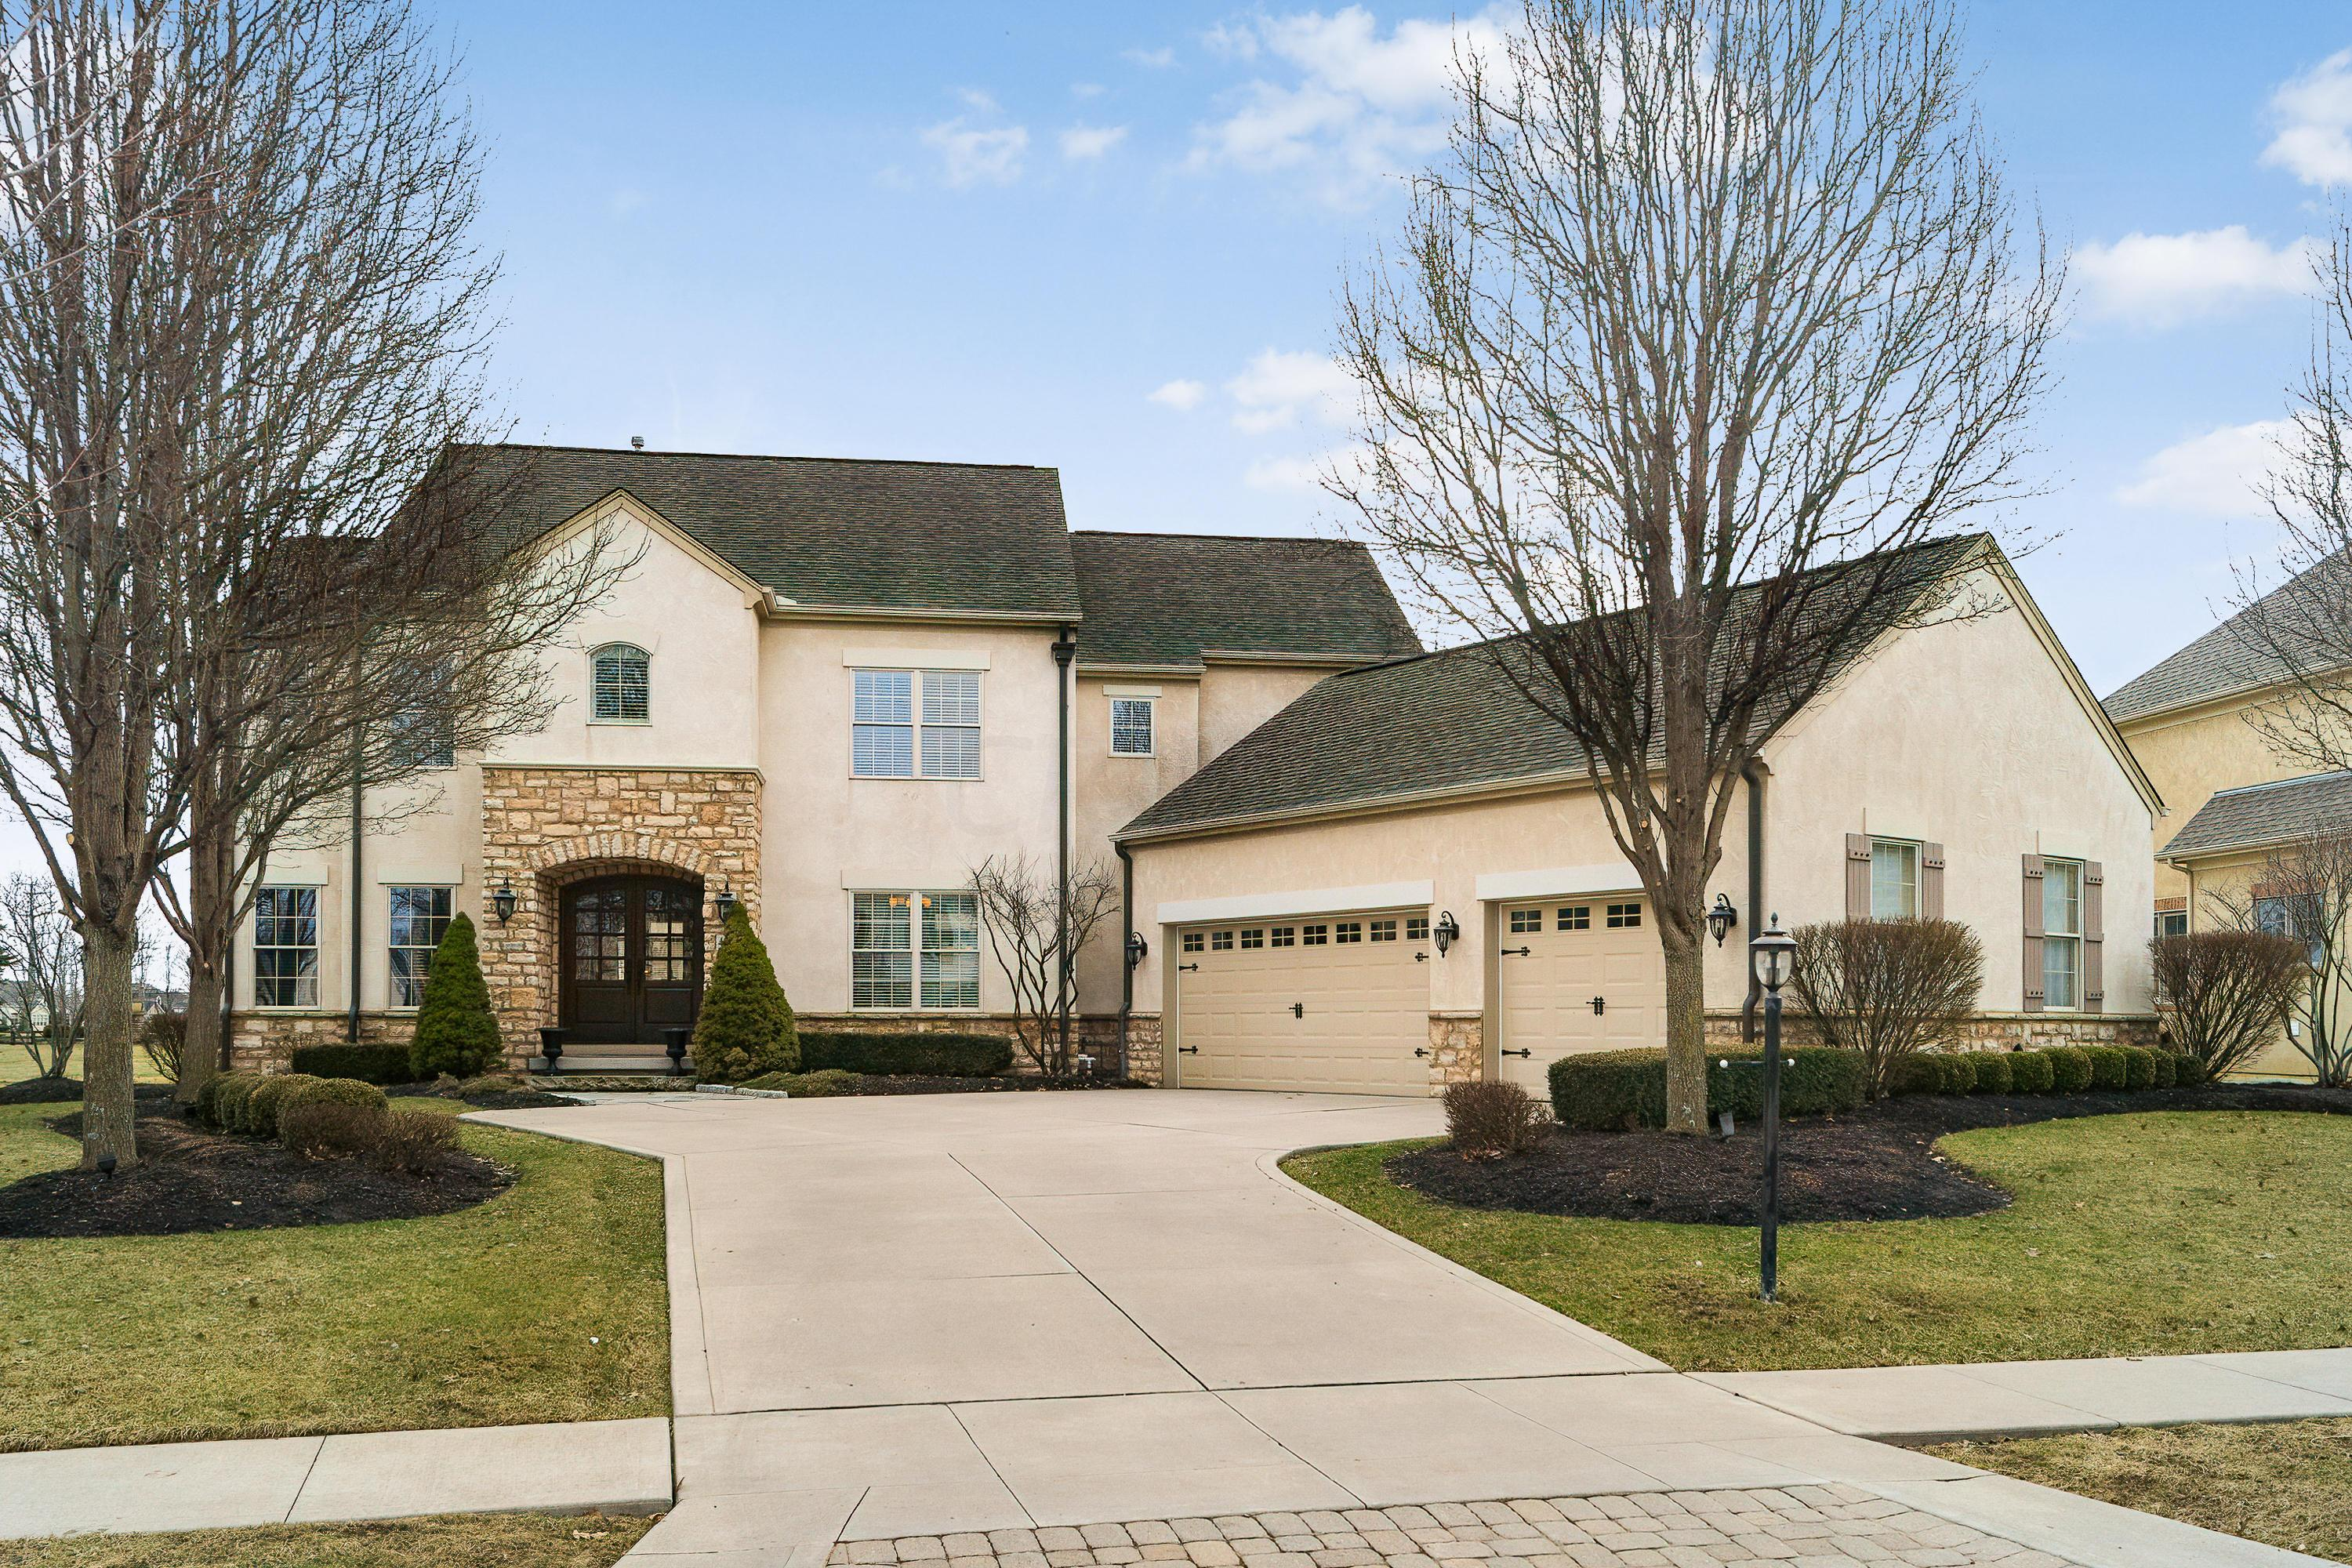 Photo of 4486 Village Club Drive, Powell, OH 43065